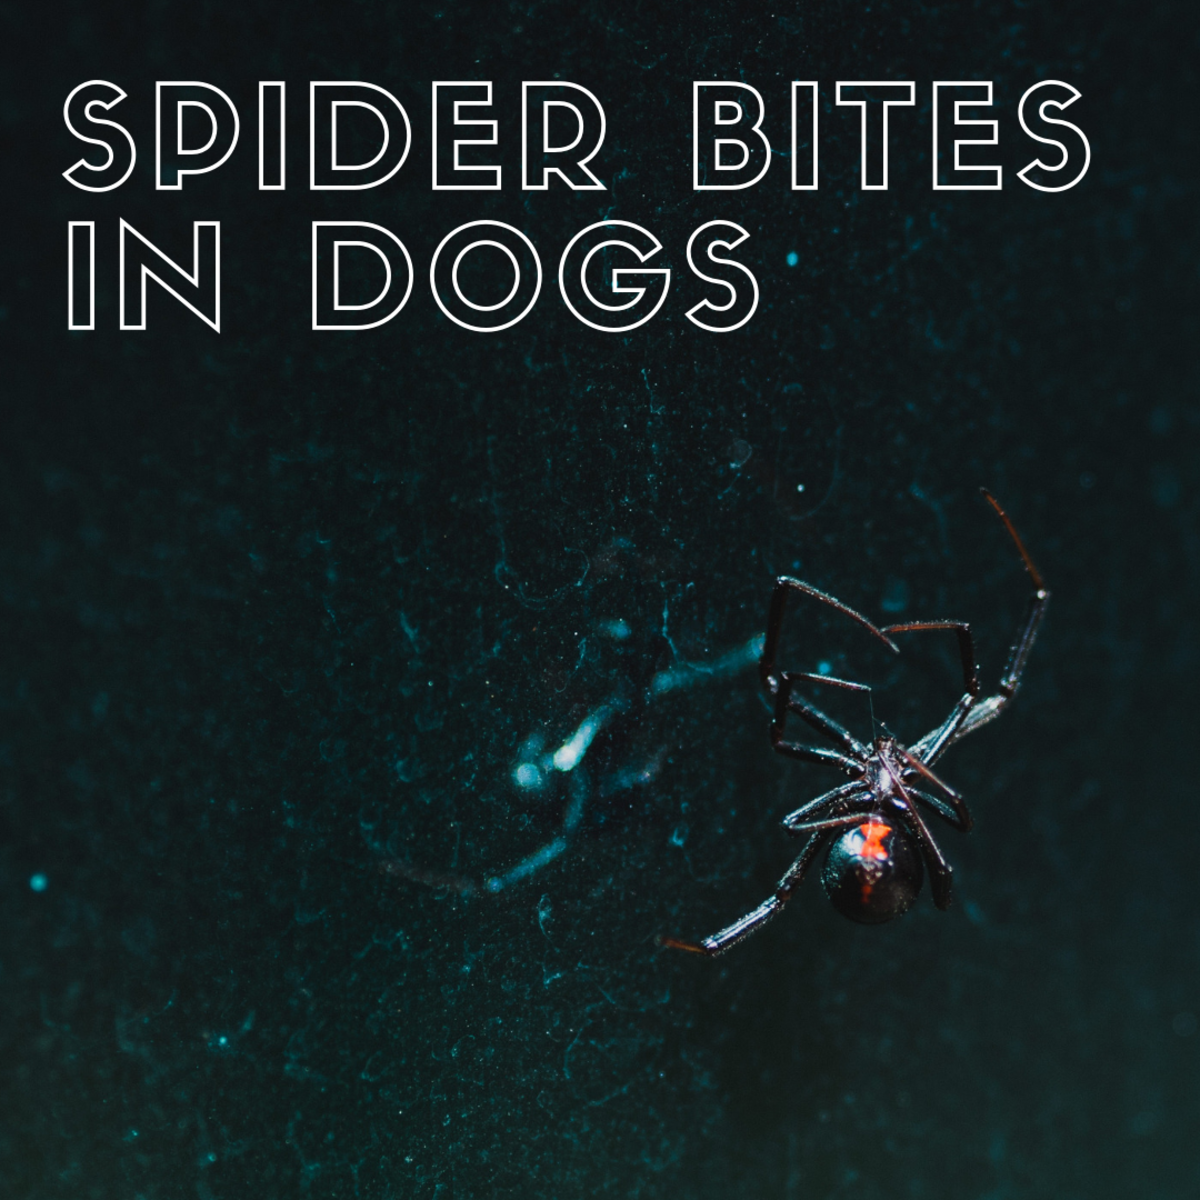 The Danger of Spider Bites to Your Dog: Photos of the Wolf Spider Bite My Dog Suffered